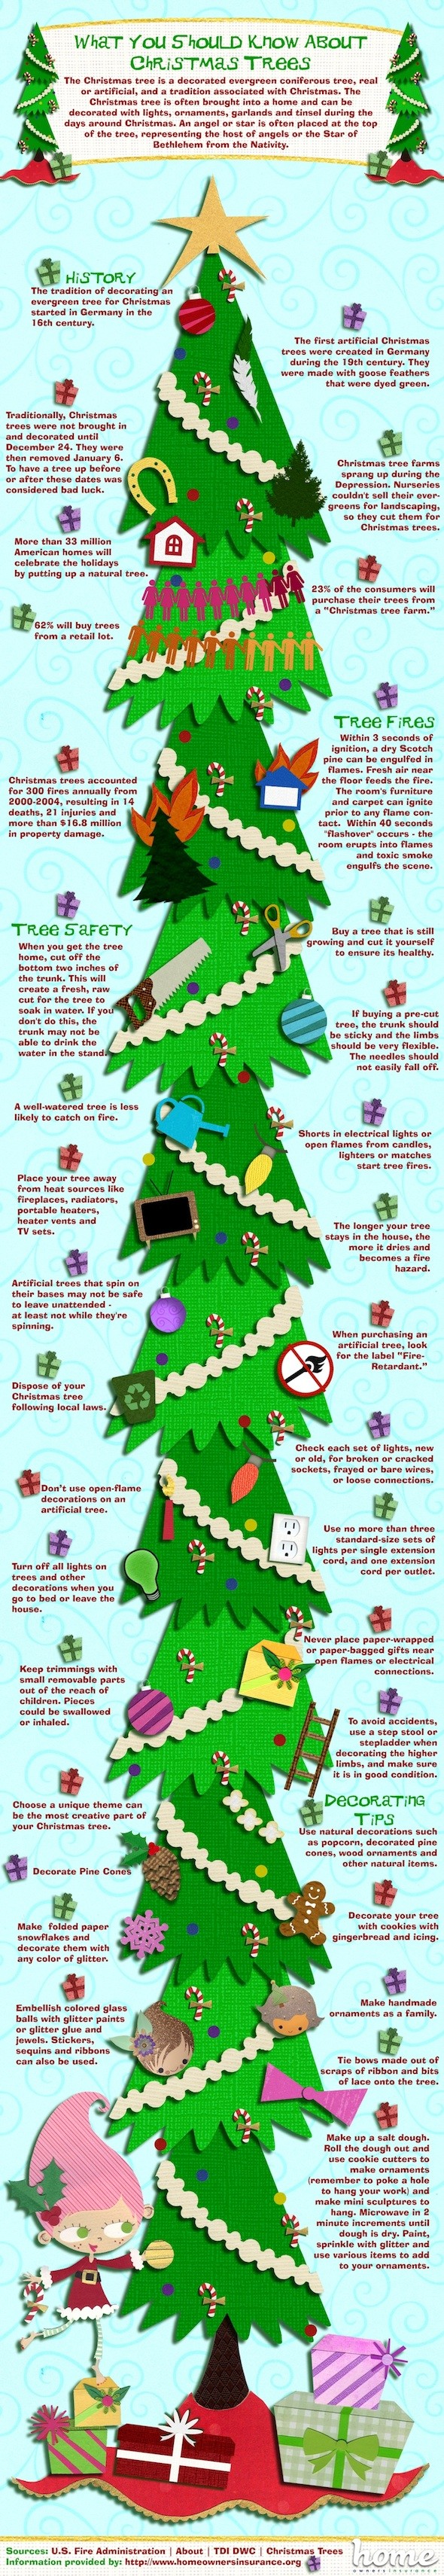 Christmas Trees Facts